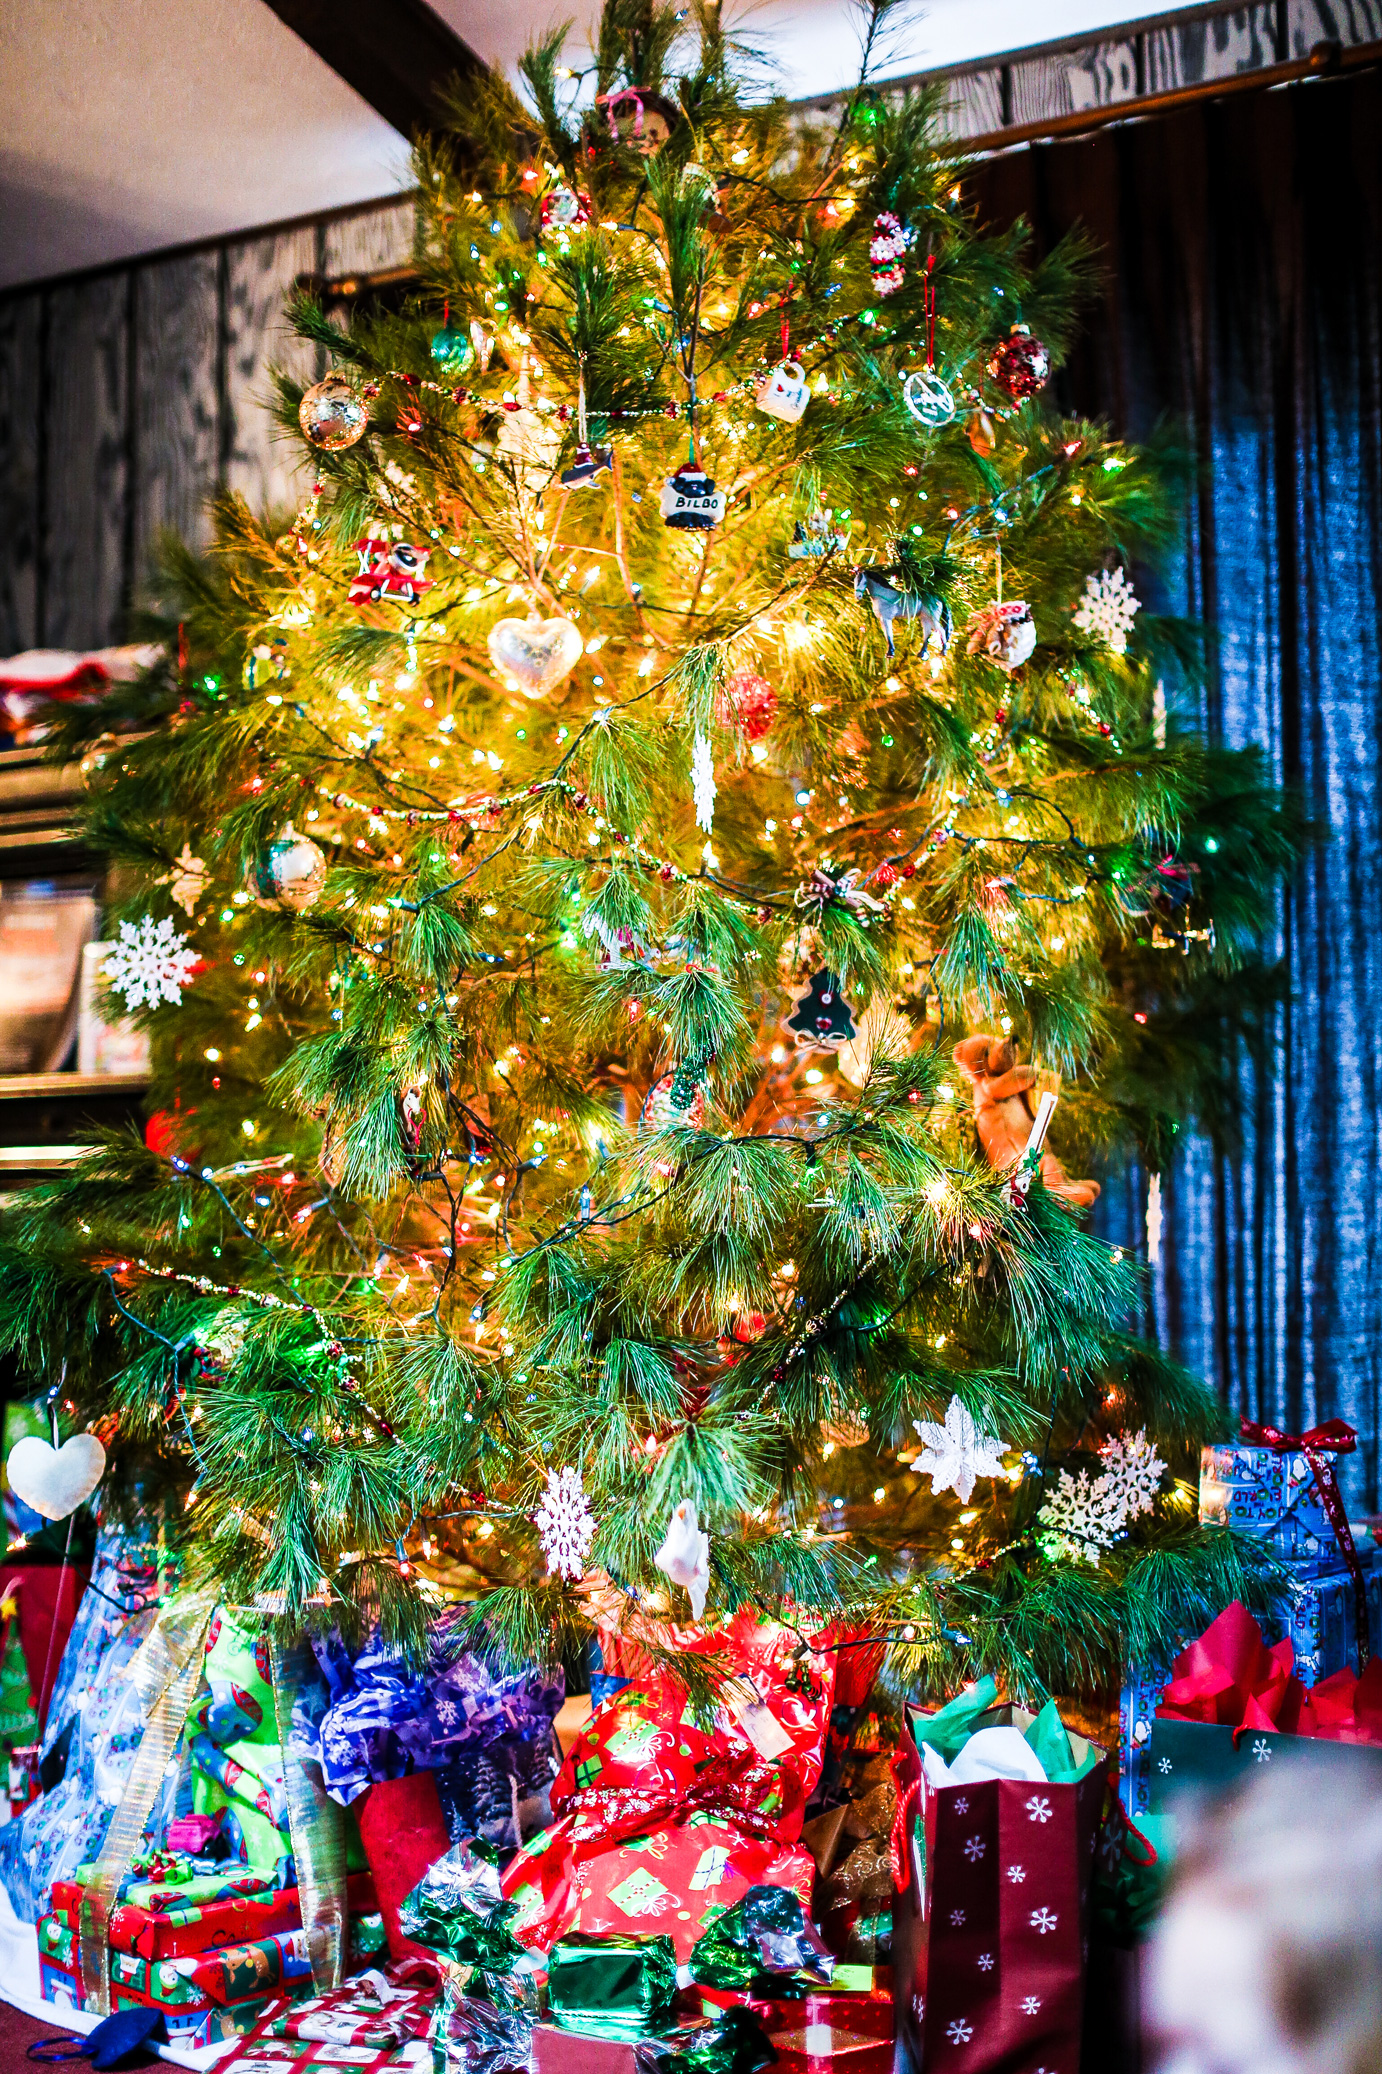 ChristmasEveDay-140